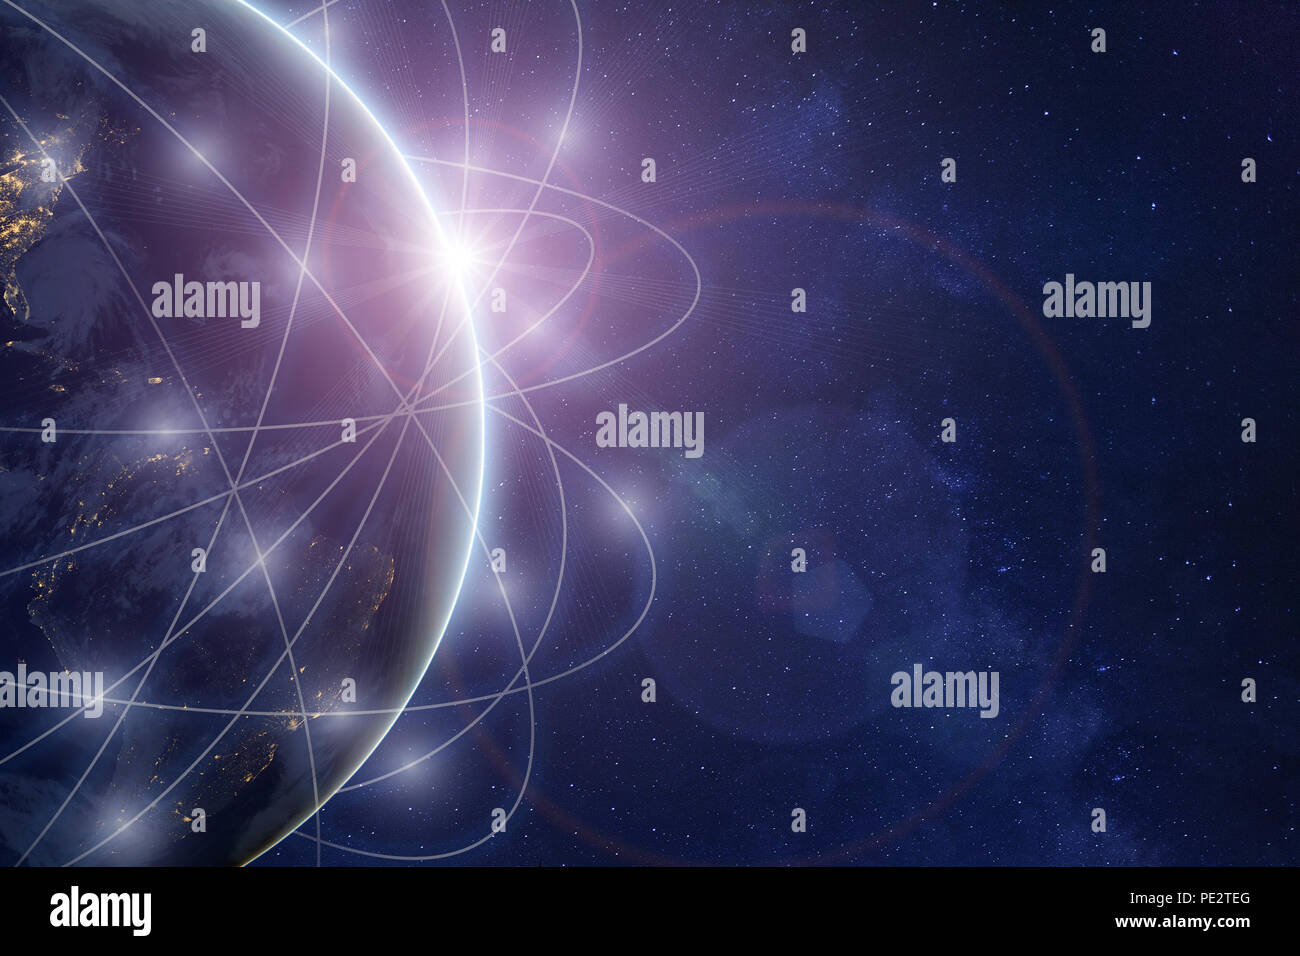 innovation technology and telecommunication concept, global internet communication network around planet Earth, satellite connection, parts of image f - Stock Image